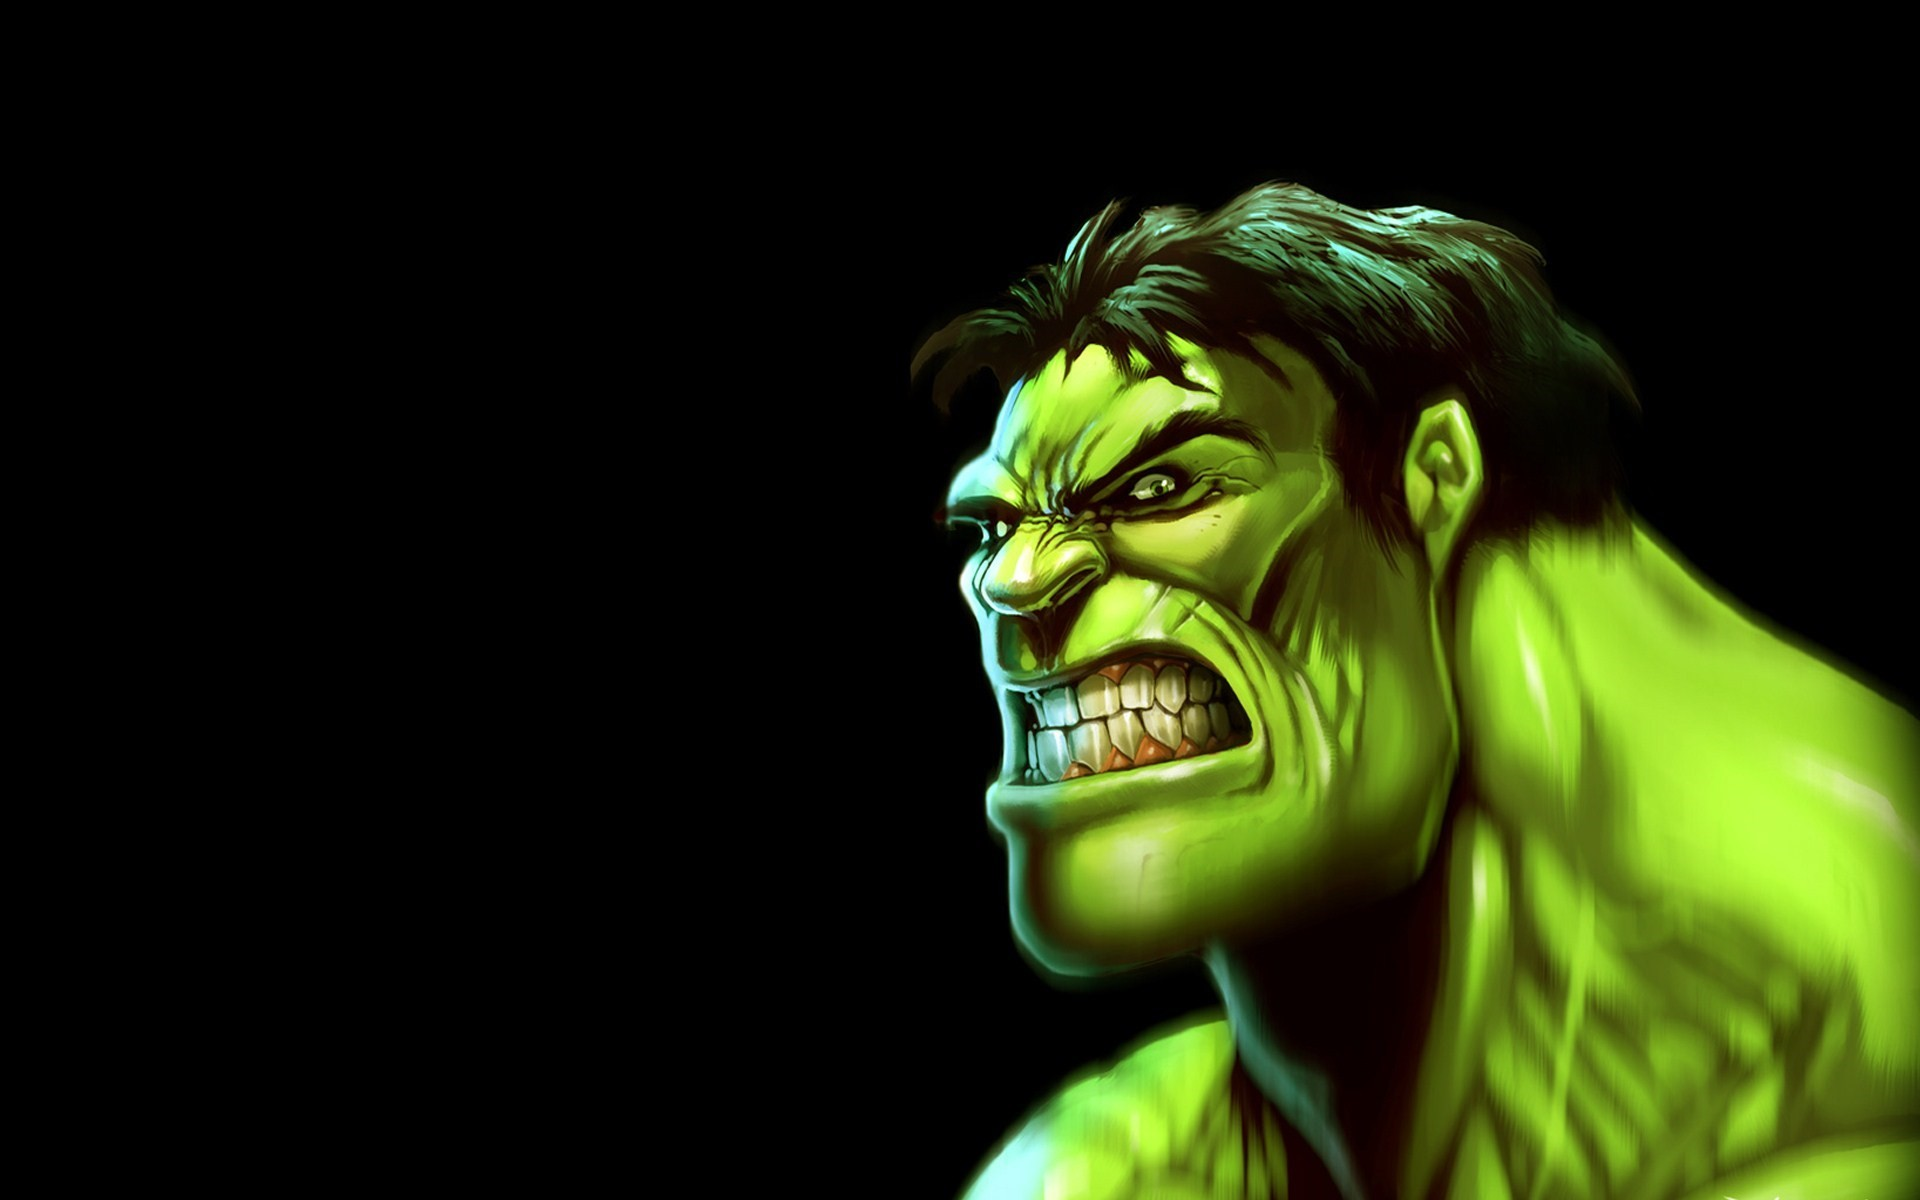 Hulk hd wallpapers 1080p 73 images 1920x1080 background full hd 1080p 1920x1080 wallpaper hulk 3d anaglyph graphics bright voltagebd Choice Image